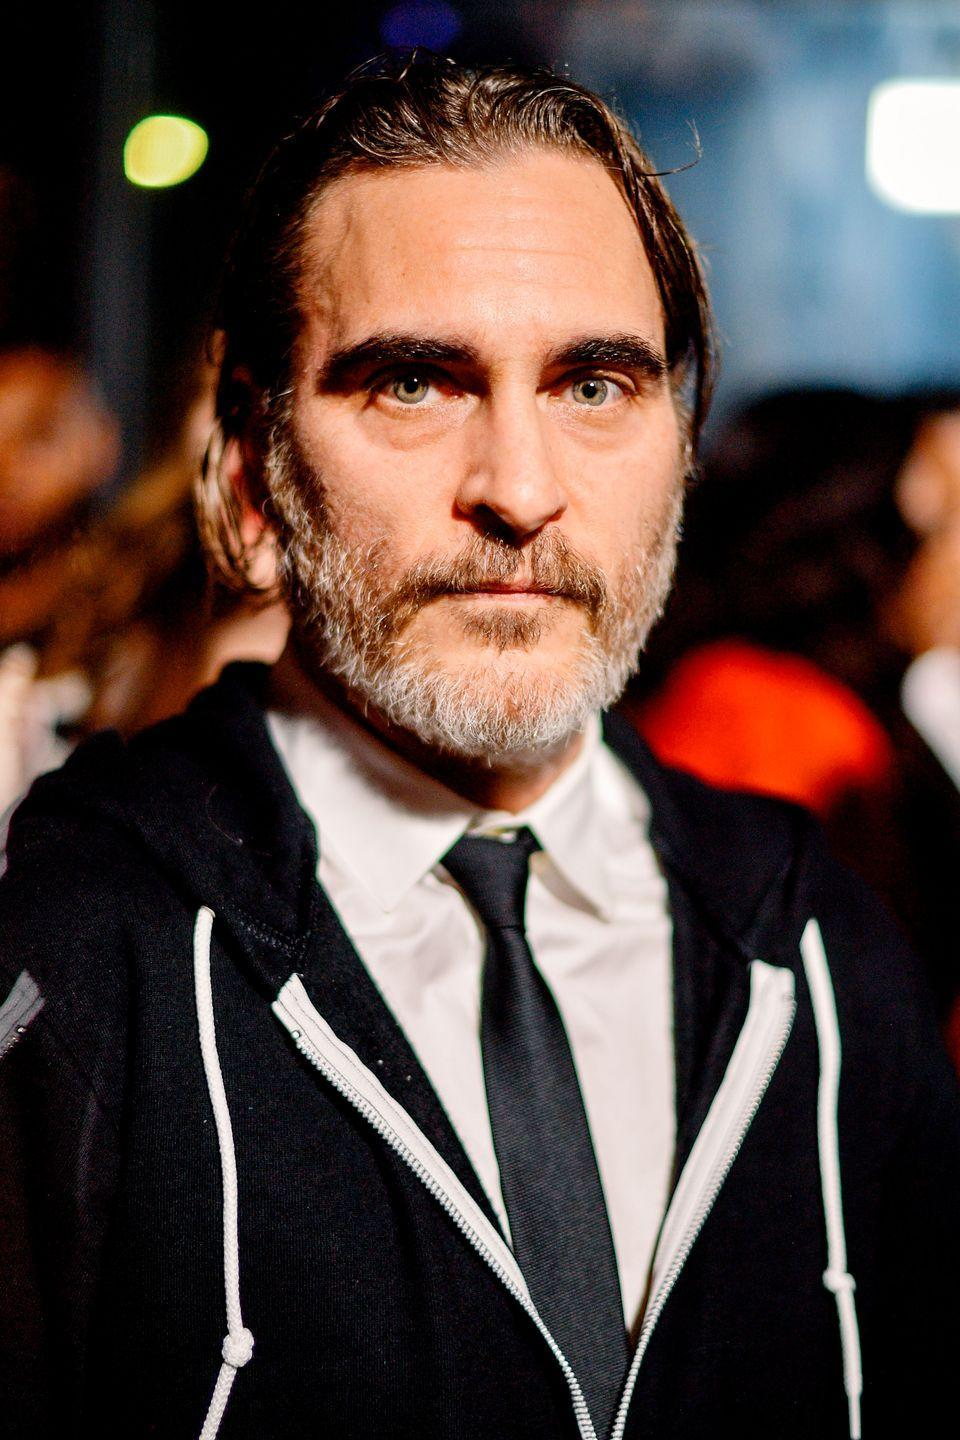 """<p><strong>Born</strong>: Joaquín Rafael Bottom<strong><br></strong></p><p>Before Joaquin Phoenix was Joaquin Phoenix, he was Joaquín Rafael... Bottom. Yep, Joaquin spent the first few years of his life as a member of the Bottom family, until his parents left their religious group and <a href=""""https://www.digitalspy.com/showbiz/a787625/youll-never-guess-what-joaquin-phoenixs-real-name-is/"""" rel=""""nofollow noopener"""" target=""""_blank"""" data-ylk=""""slk:chose Phoenix"""" class=""""link rapid-noclick-resp"""">chose Phoenix</a> as the new family surname.</p>"""